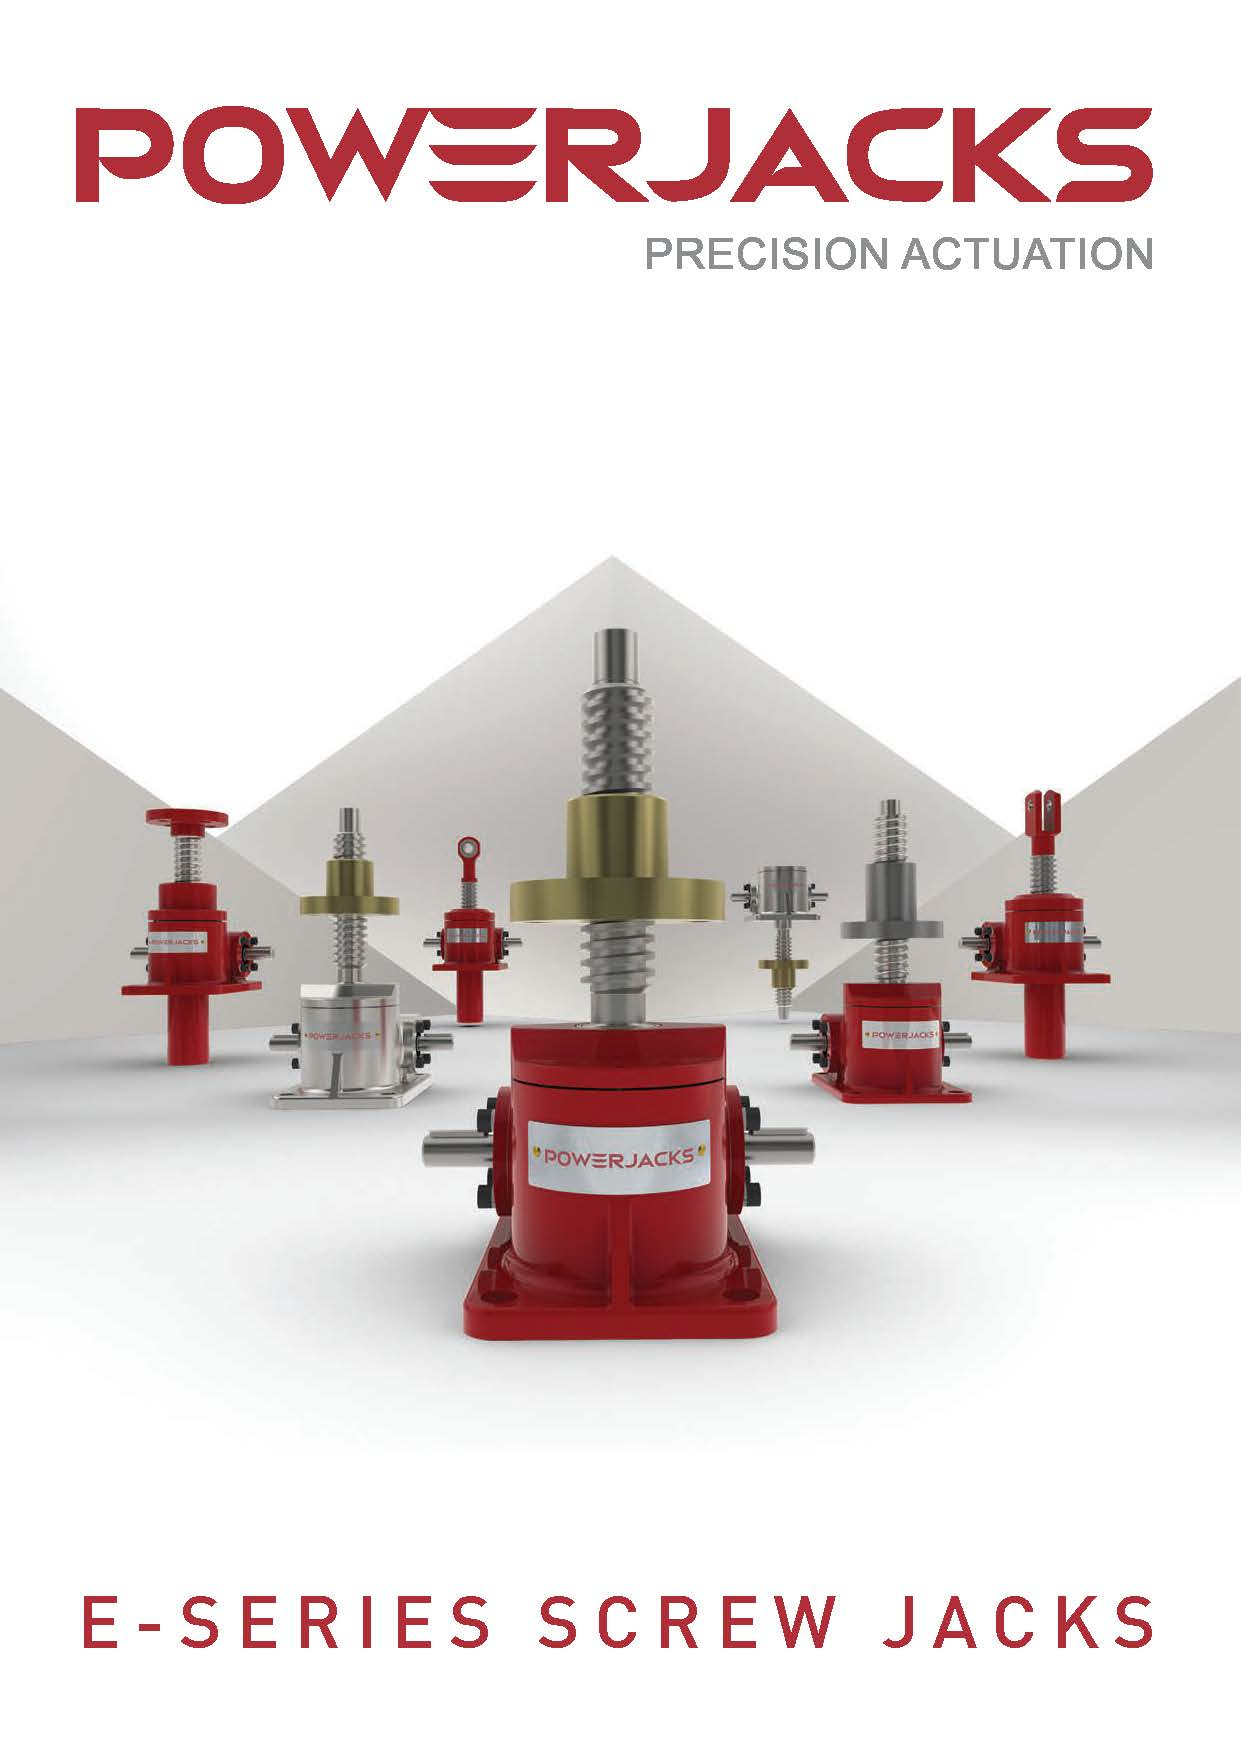 E-Series Screw Jack Brochure